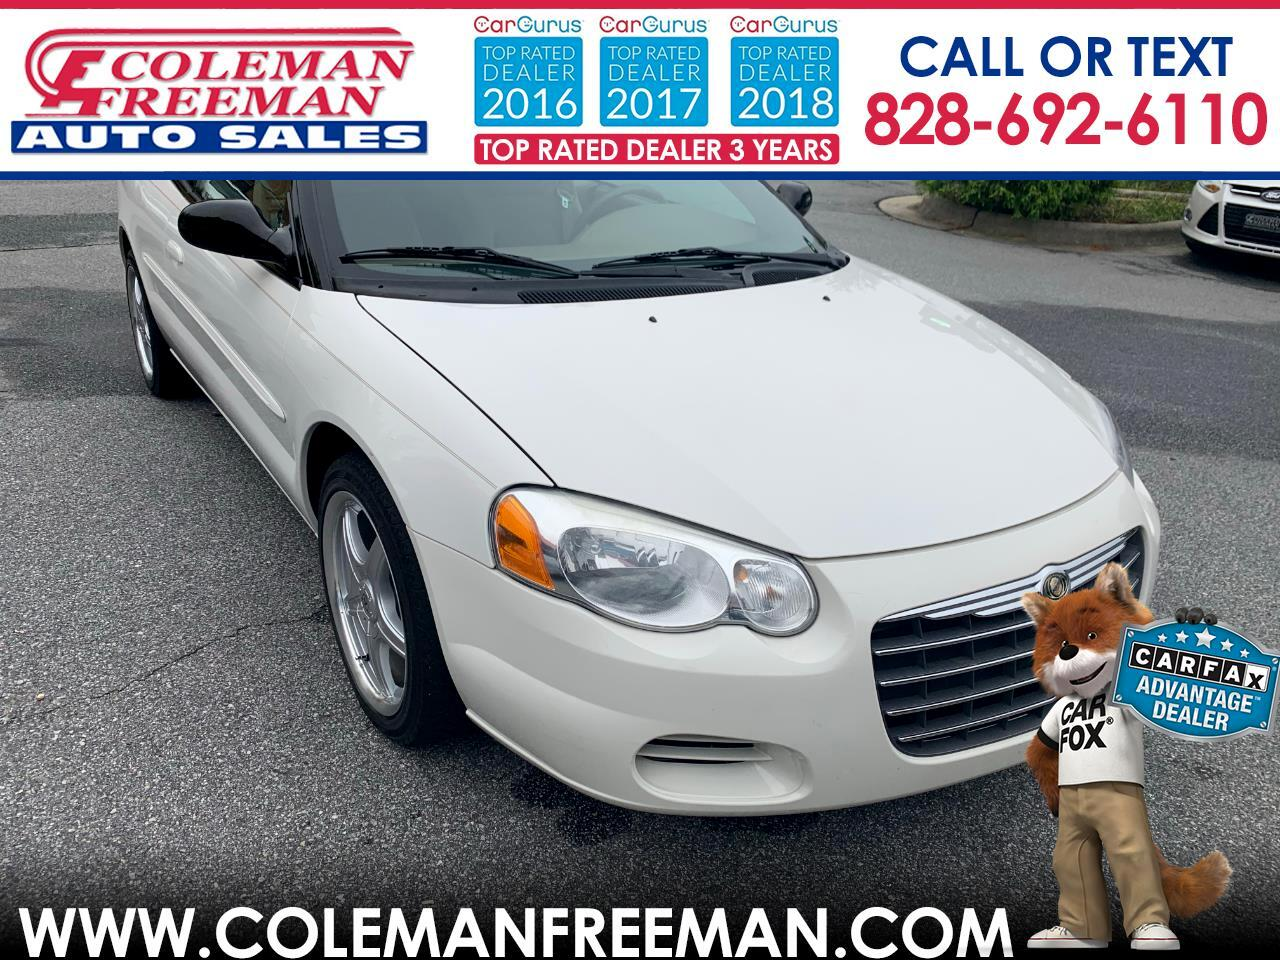 2004 Chrysler Sebring 2004 2dr Convertible LX